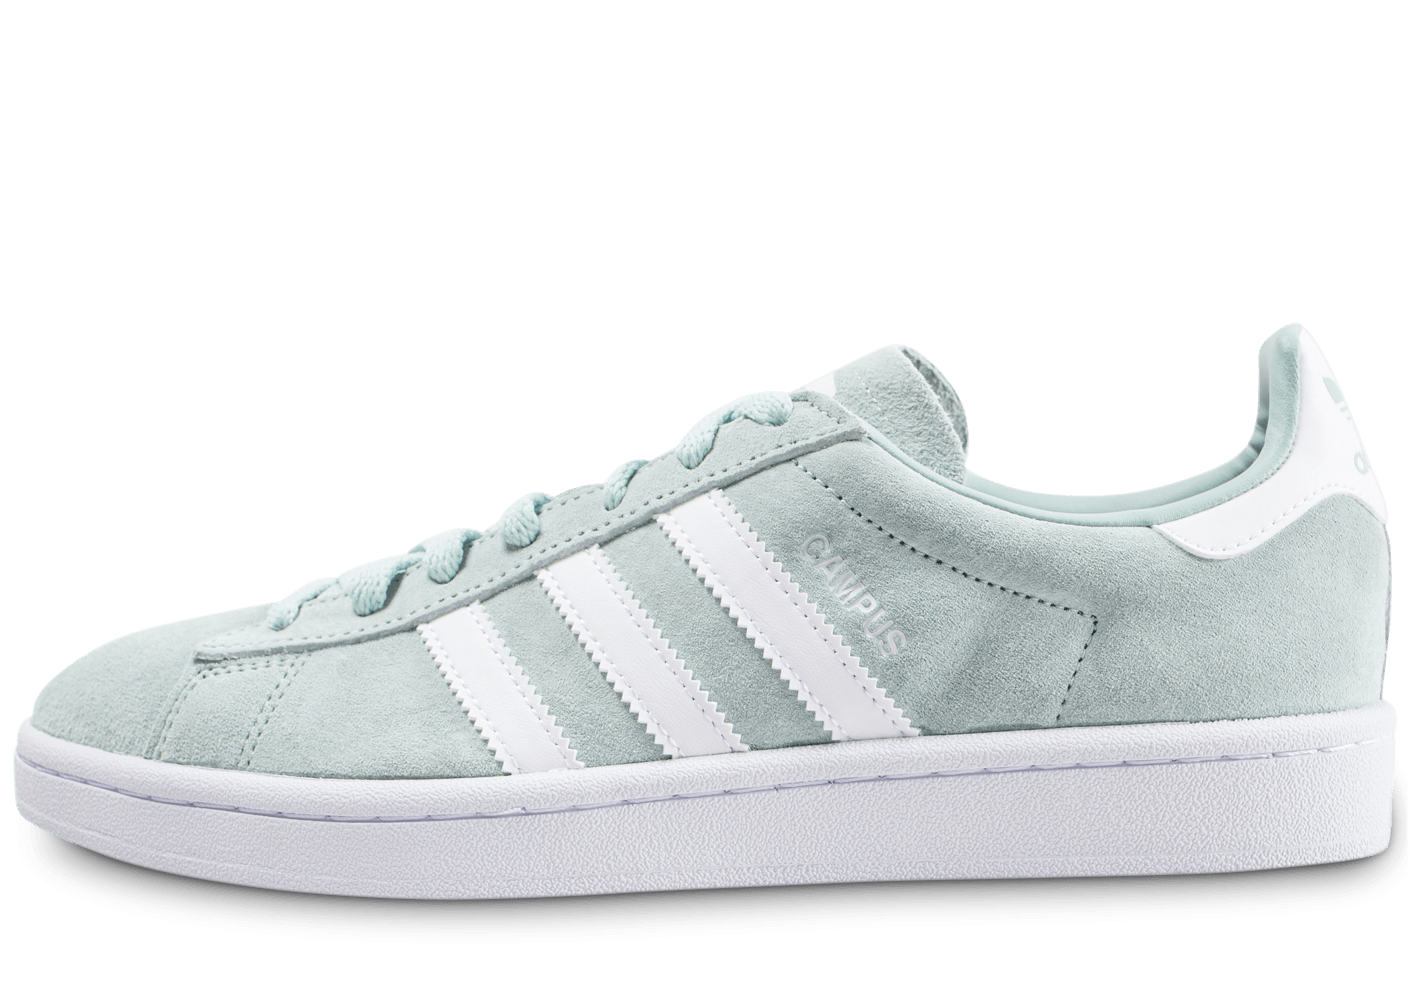 huge selection of 2a4e2 dd33b adidas adidas Baskets Chausport menthe Chaussures Campus vert homme SqRw7SrZ